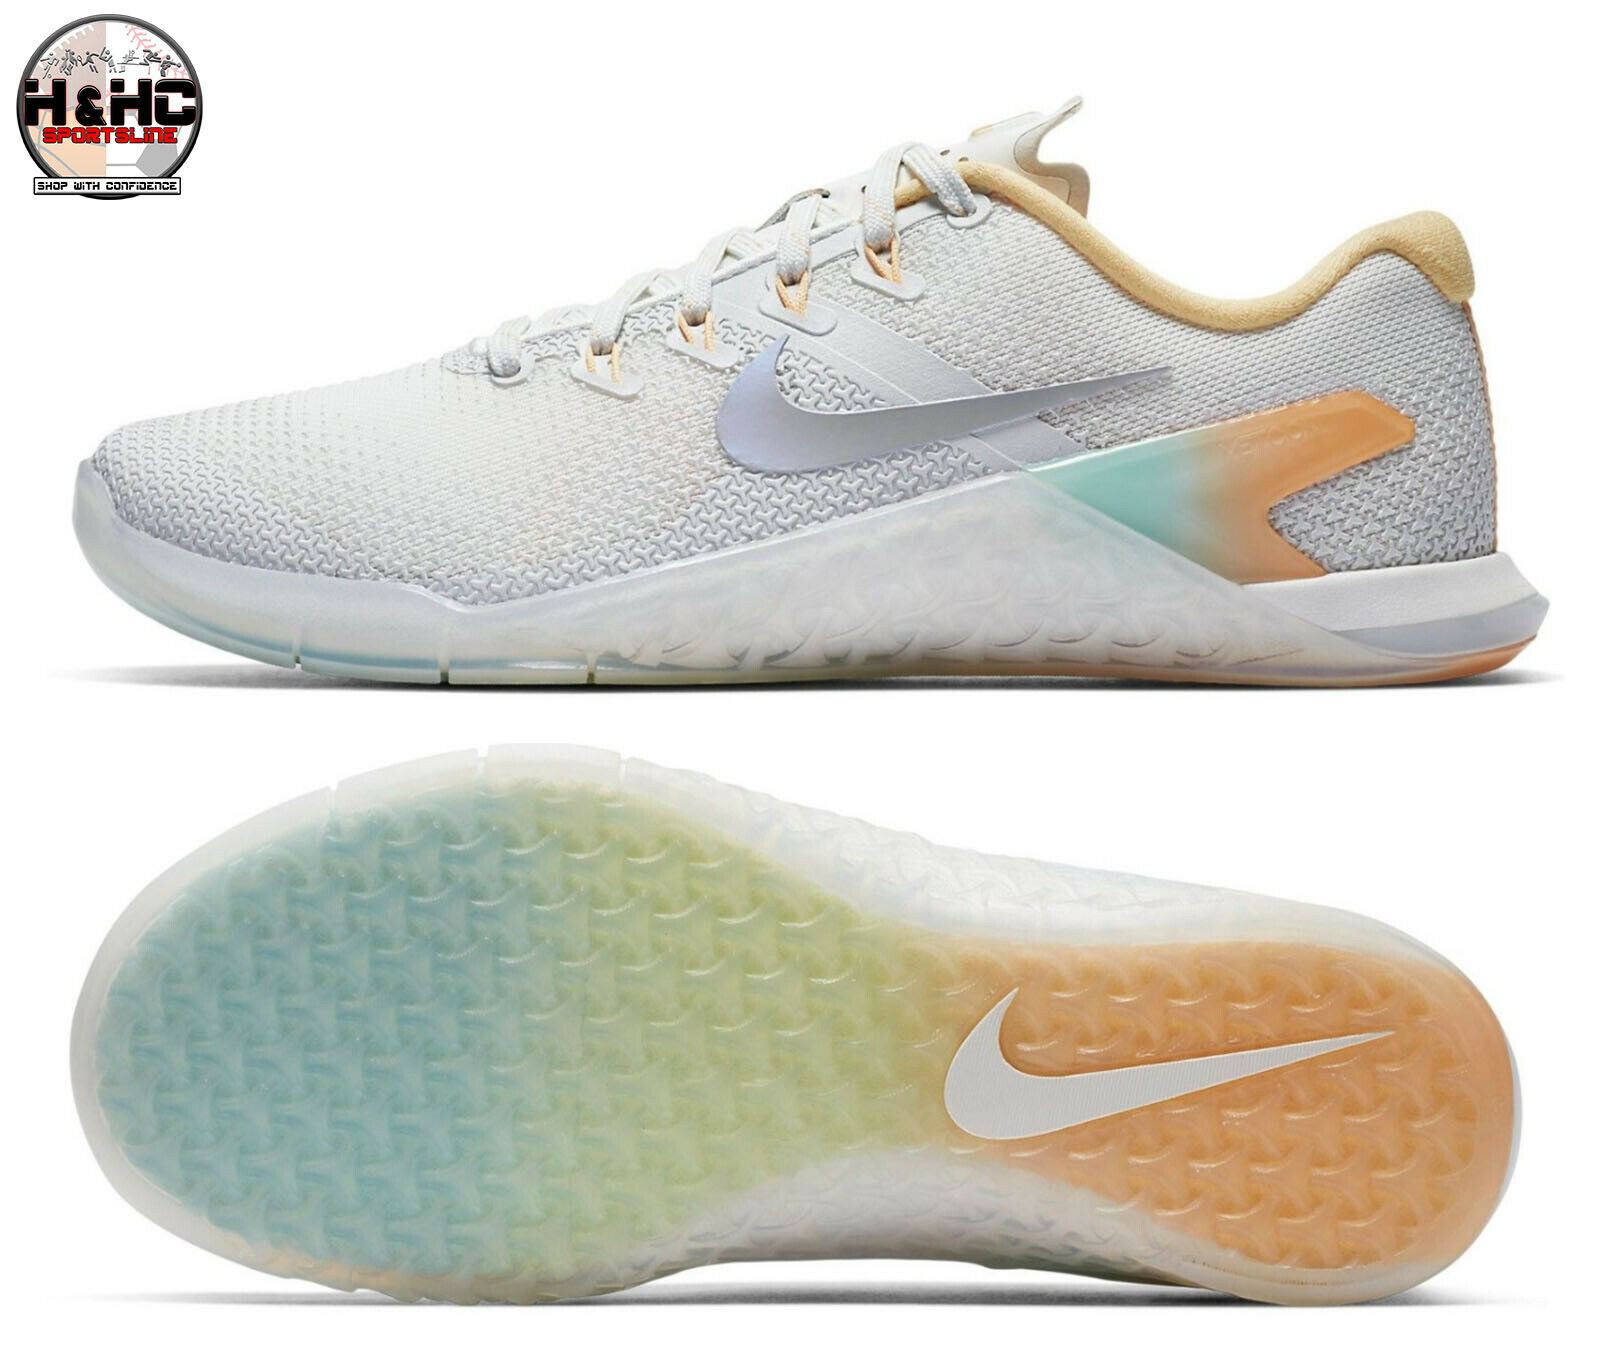 Nike Metcon 4 Rise AH8184 100 White Wolf Grey Women's Training shoes Sz 10